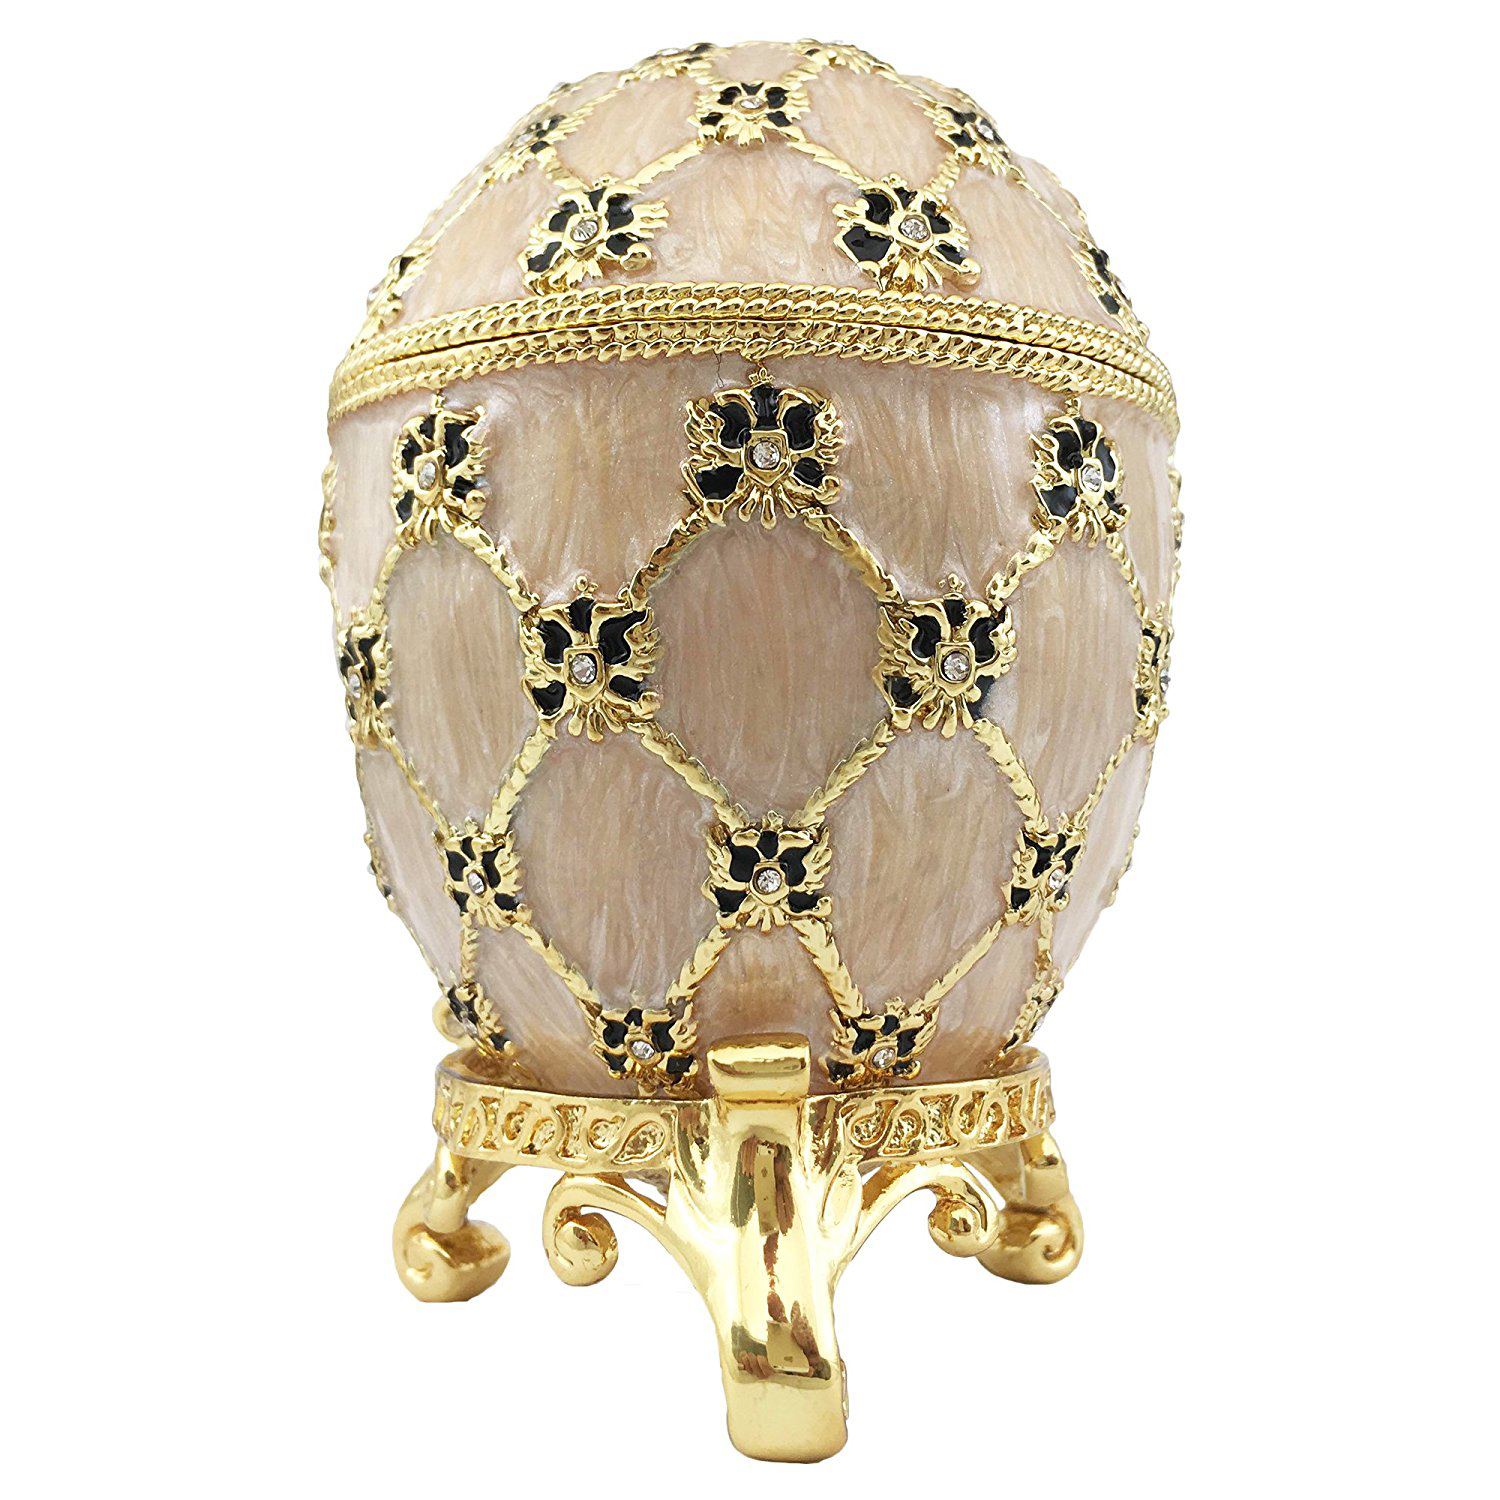 Stunning Gold Faberge Egg Jewelry Box